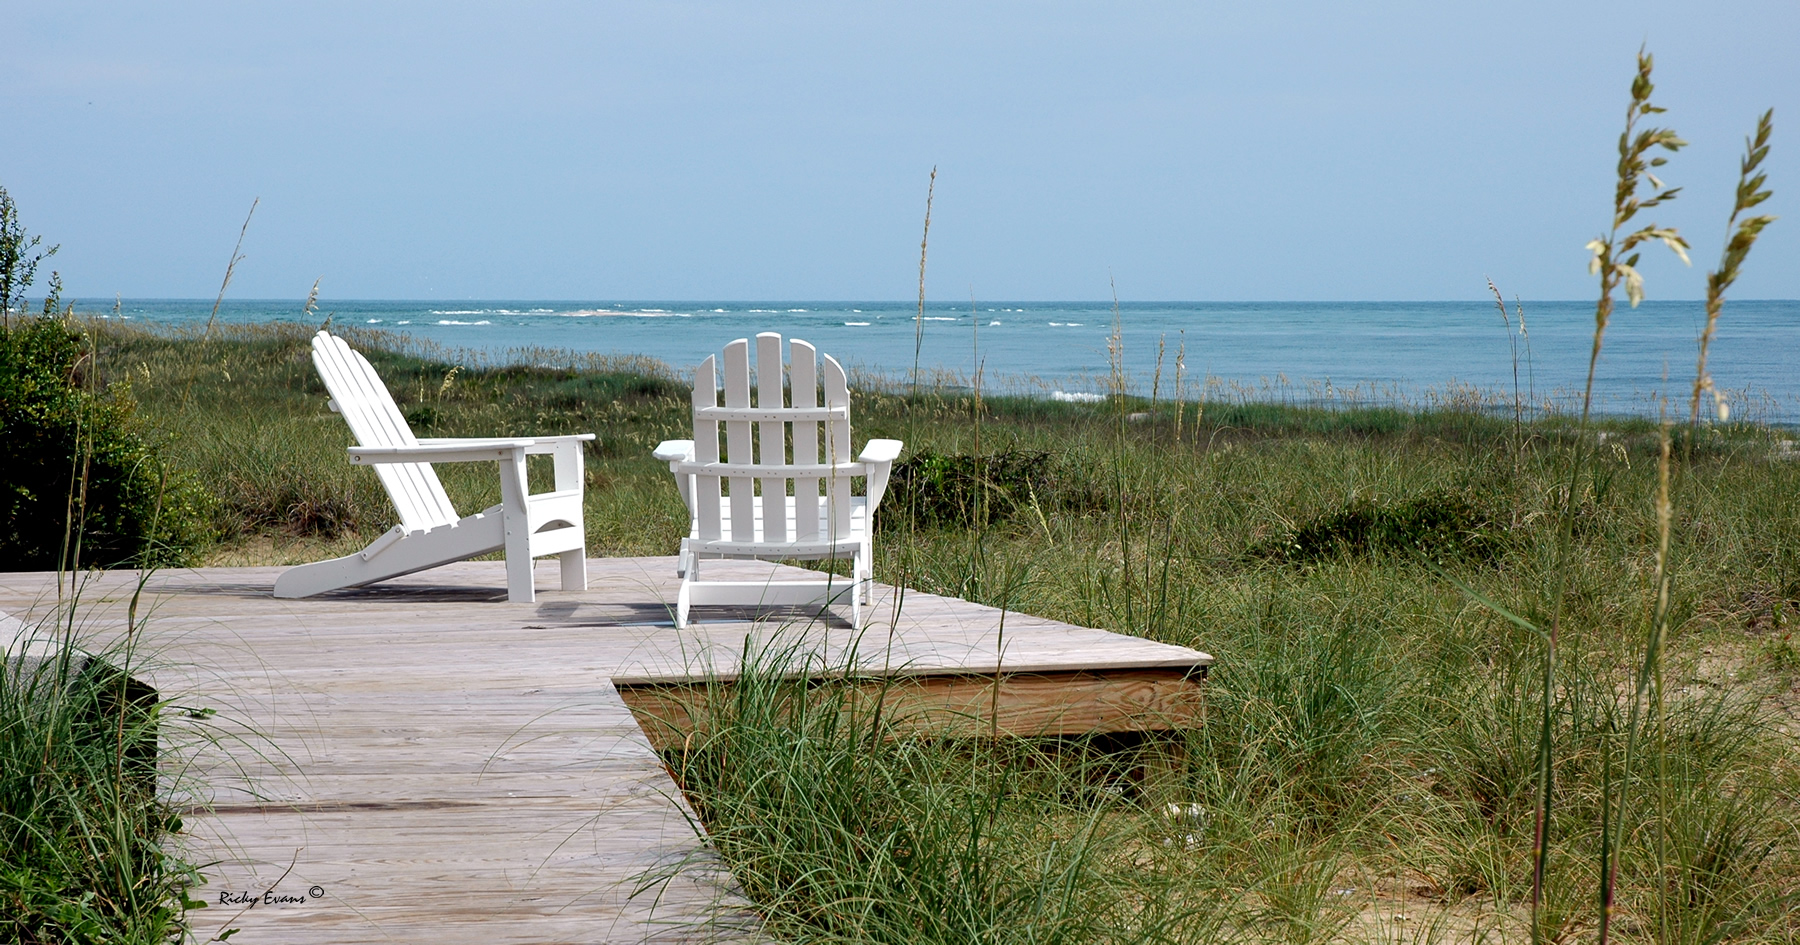 Bald Head Beach Chairs - Photo by Ricky Evans